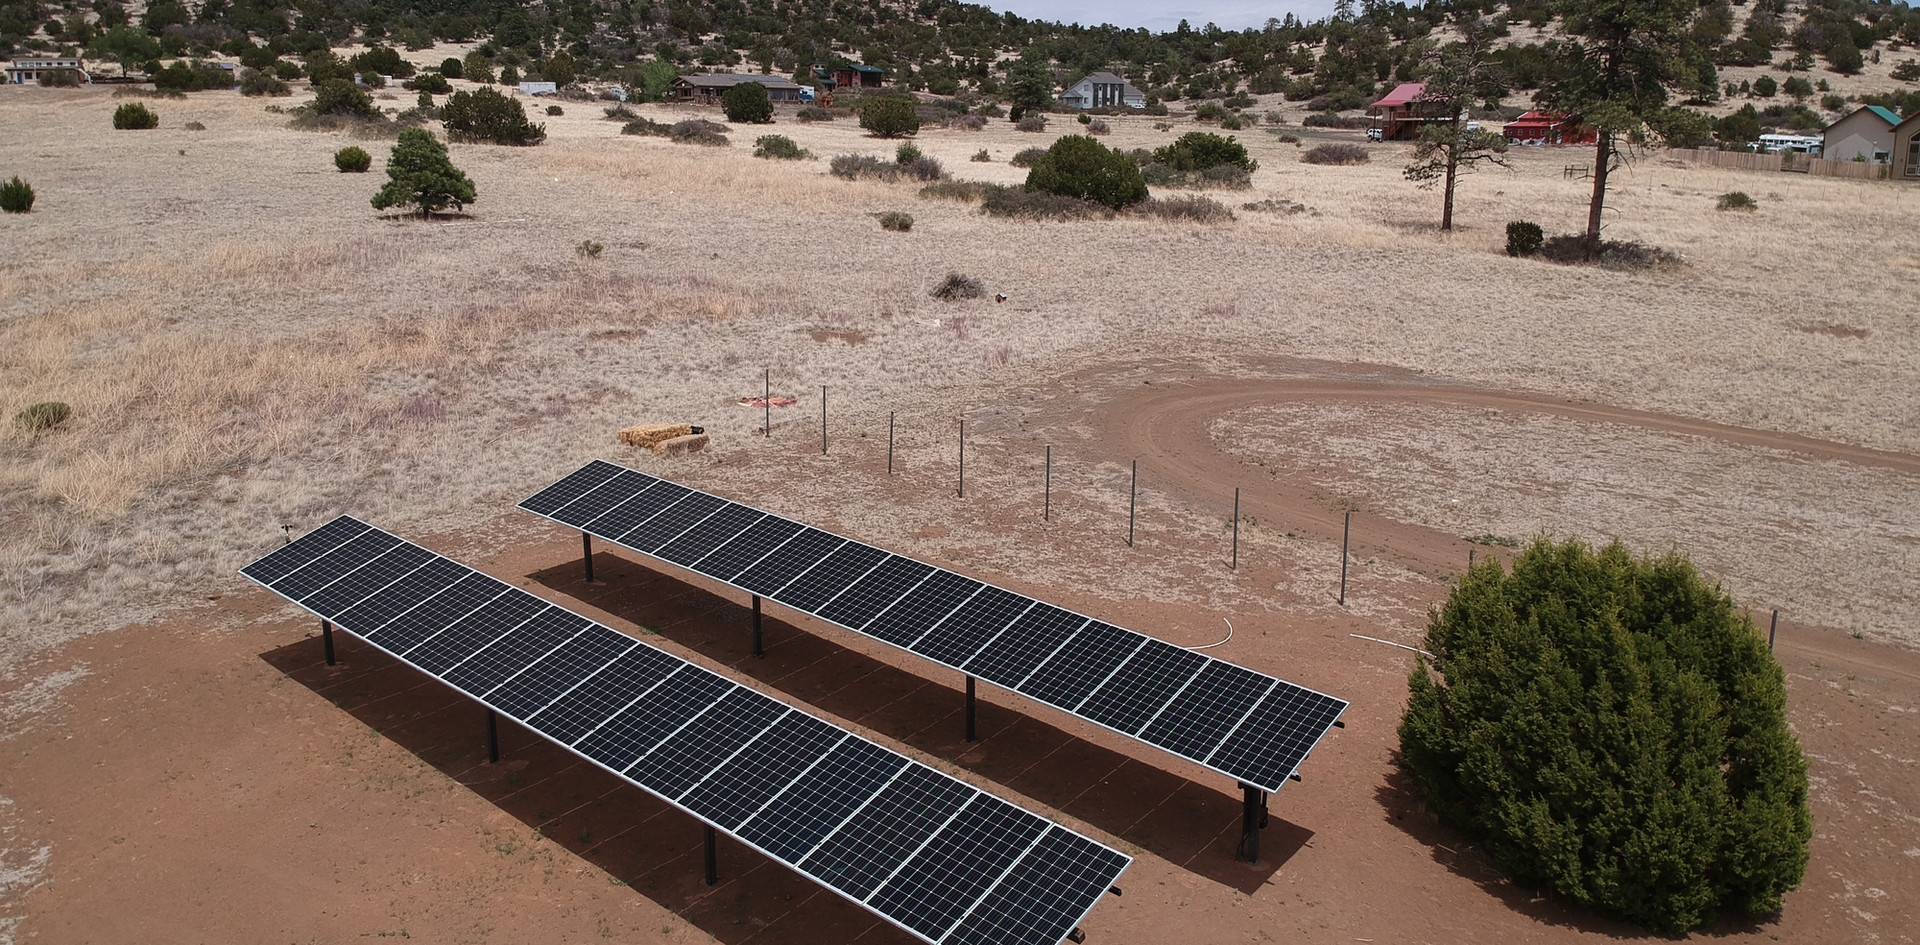 dji-drone-photo-sedona-solar-modules-GEE